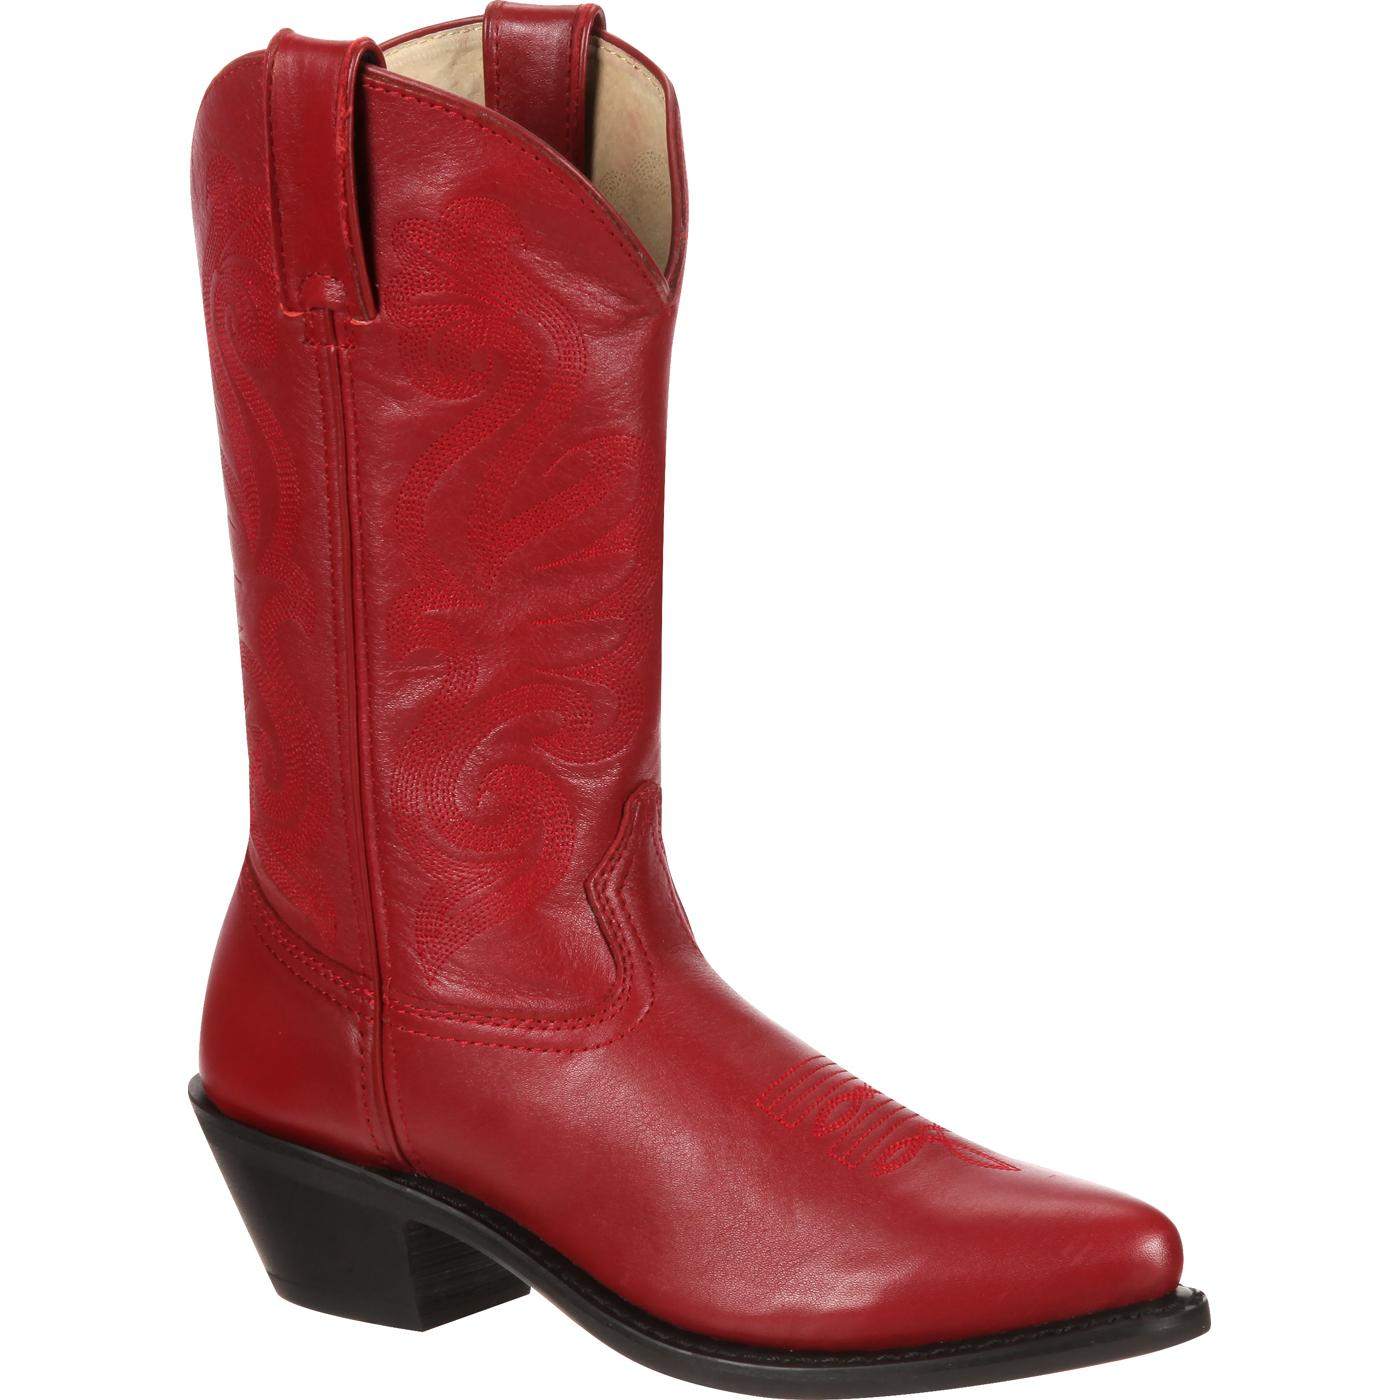 Durango: Women's Red Leather Western Boot, style #RD4105